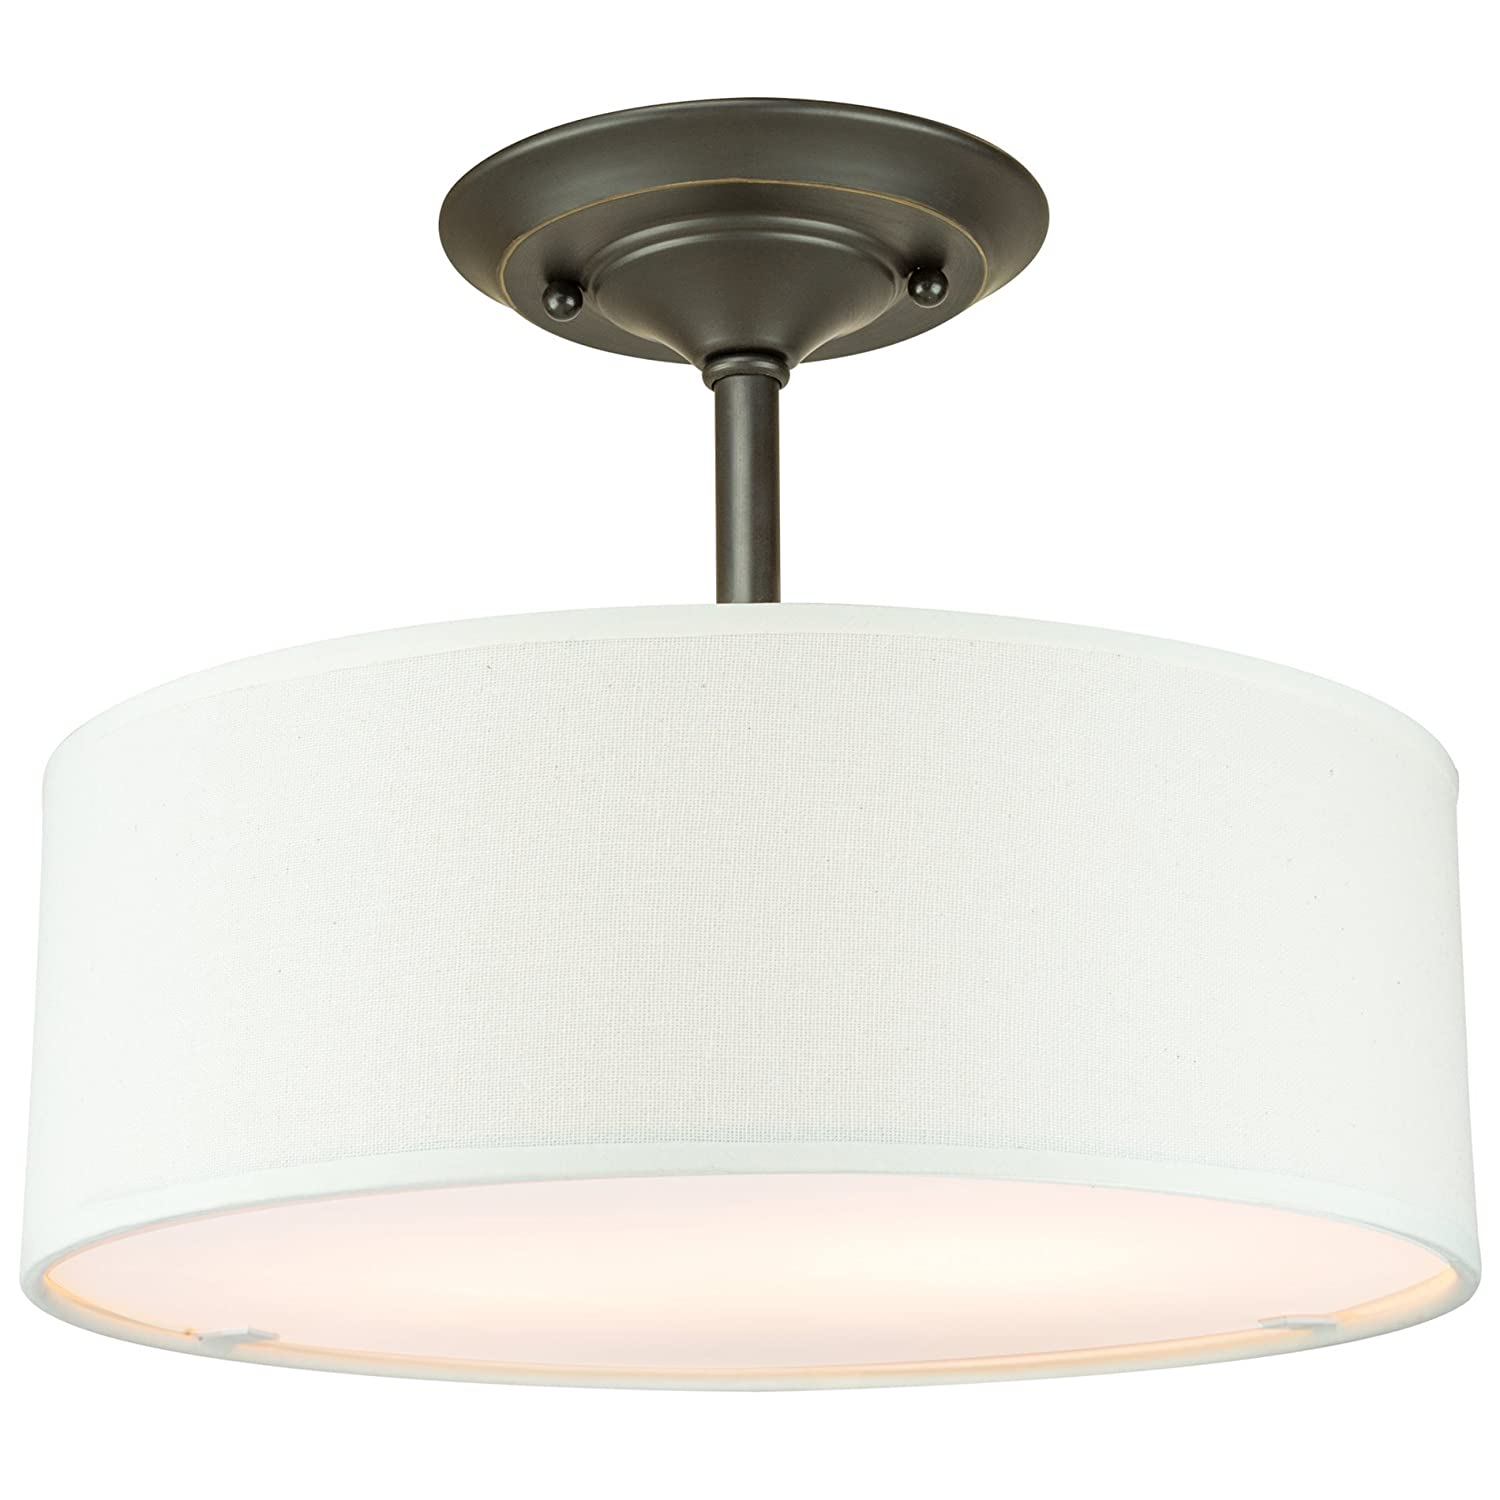 Over The Sink Light Fixtures: Cover Fluorescent Light Over Kitchen Sink